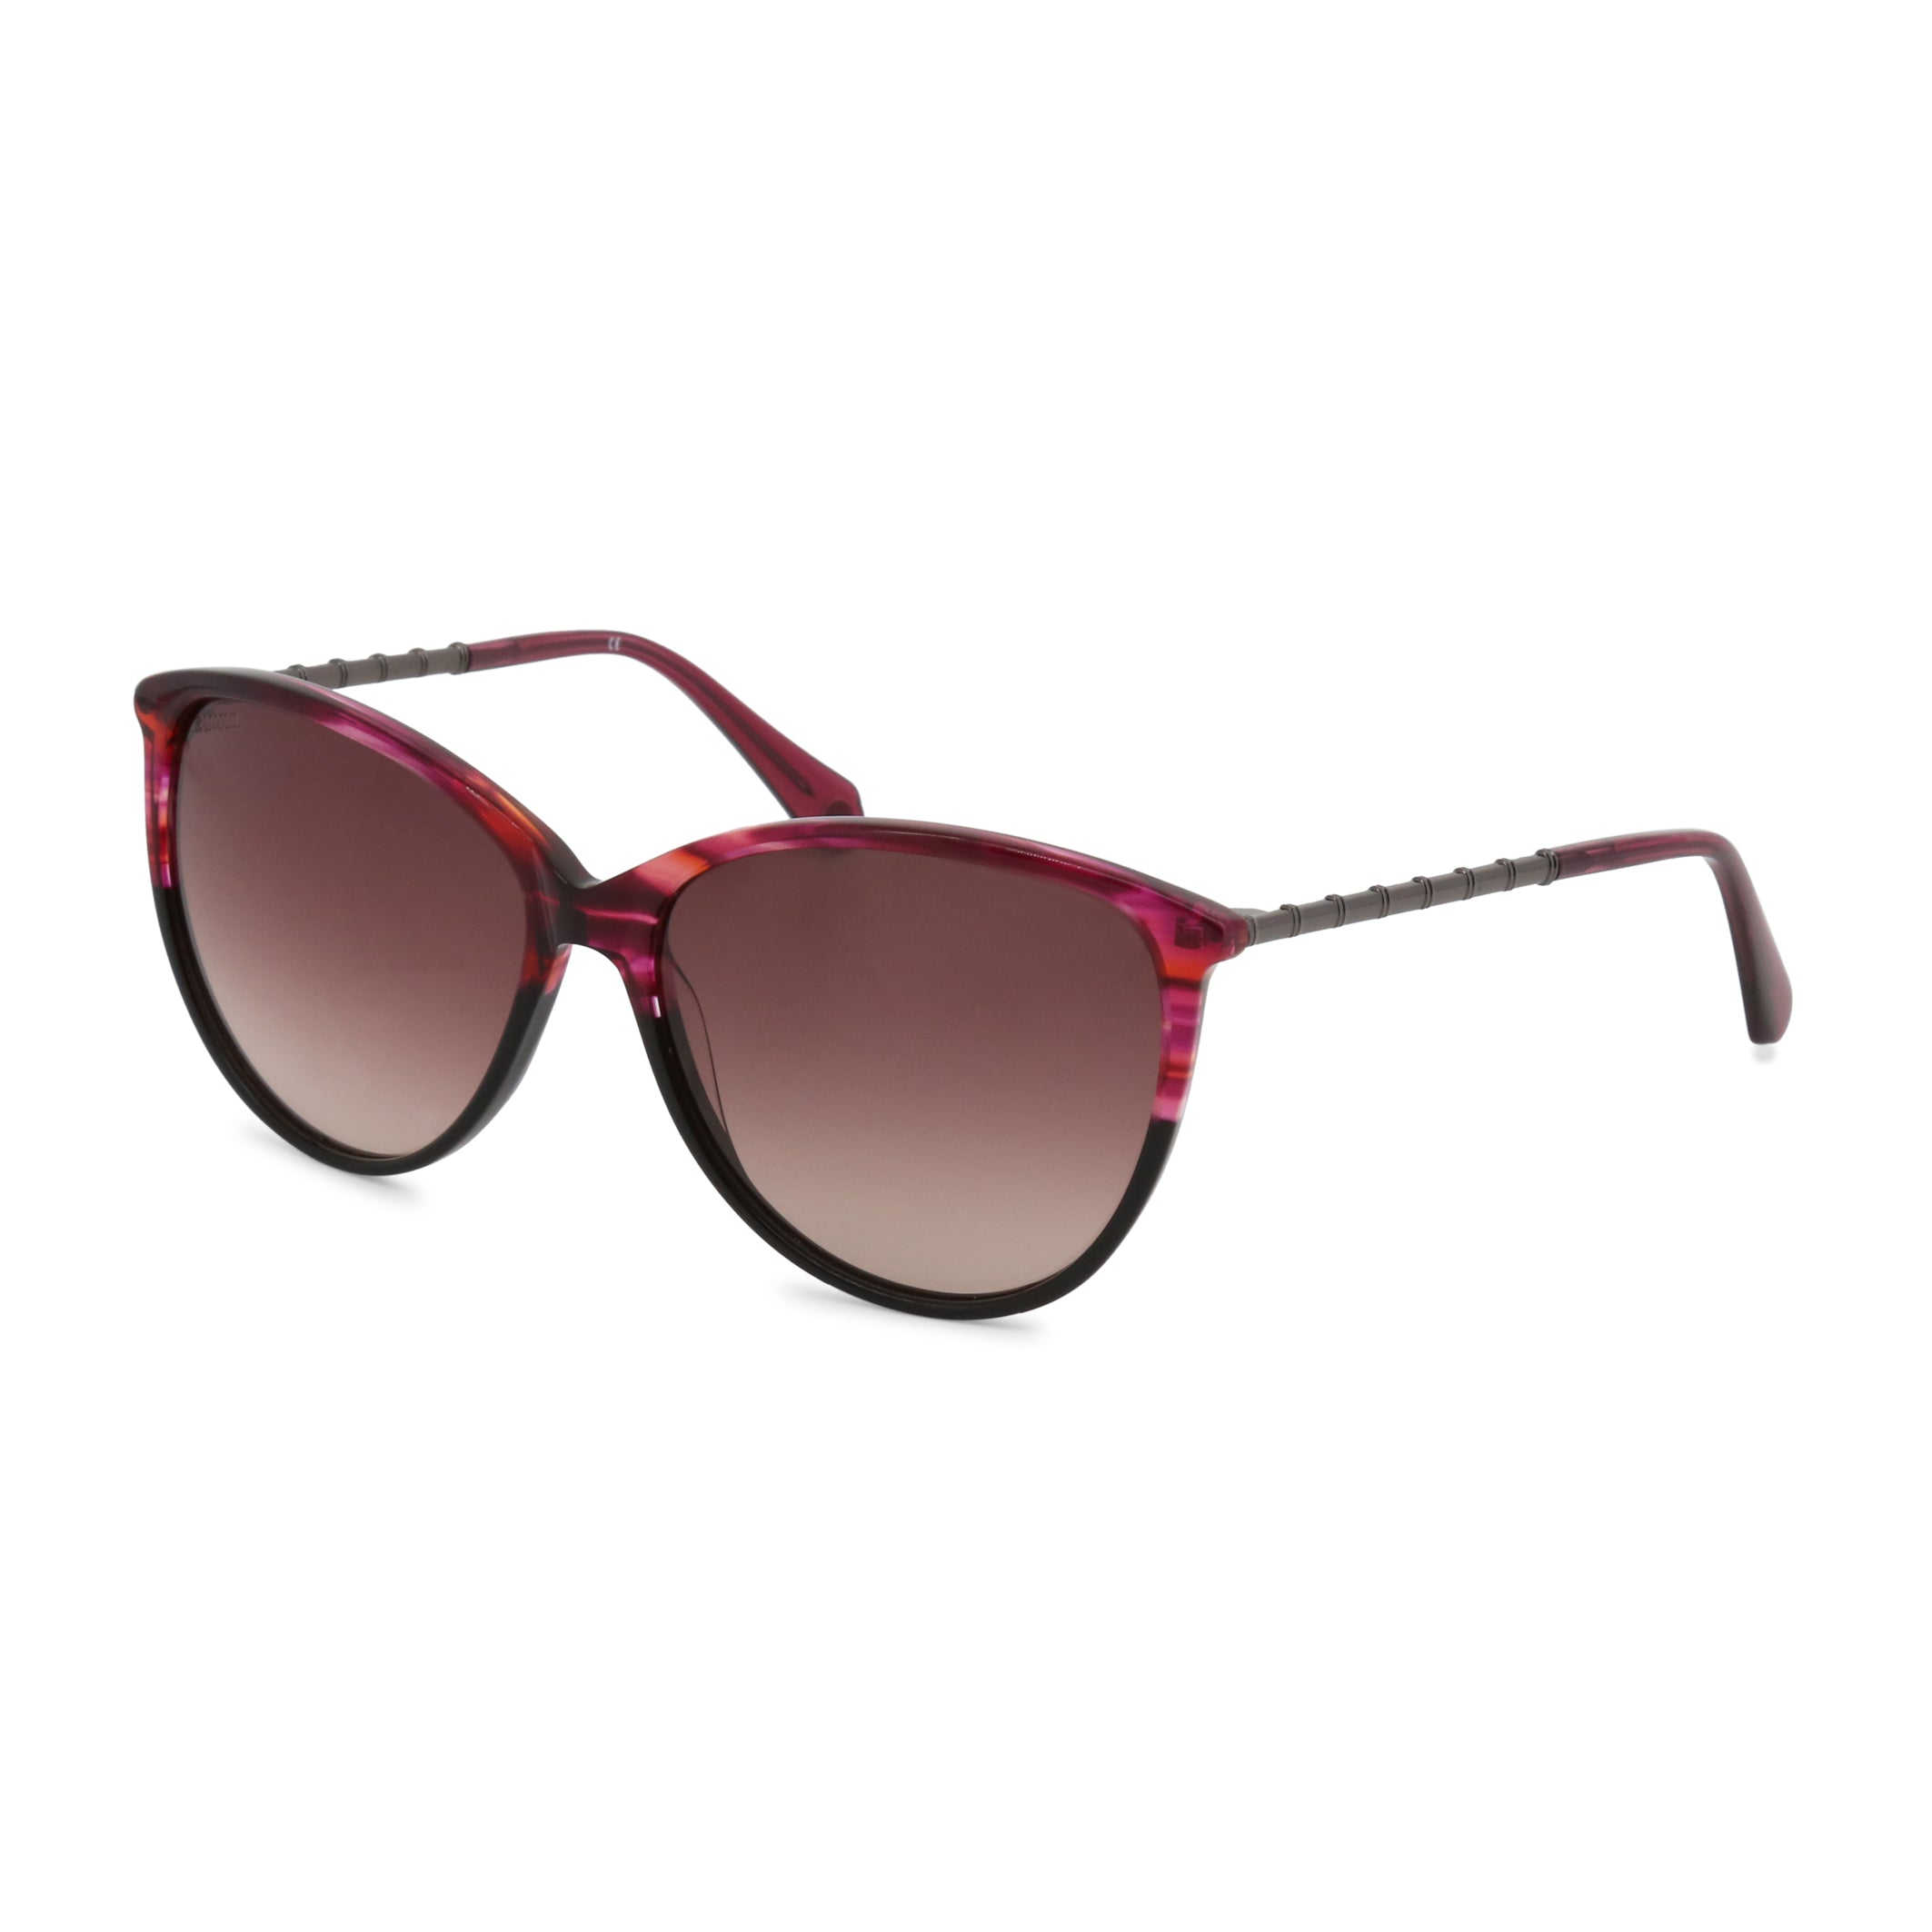 Balmain - WOMEN'S THIN FRAME